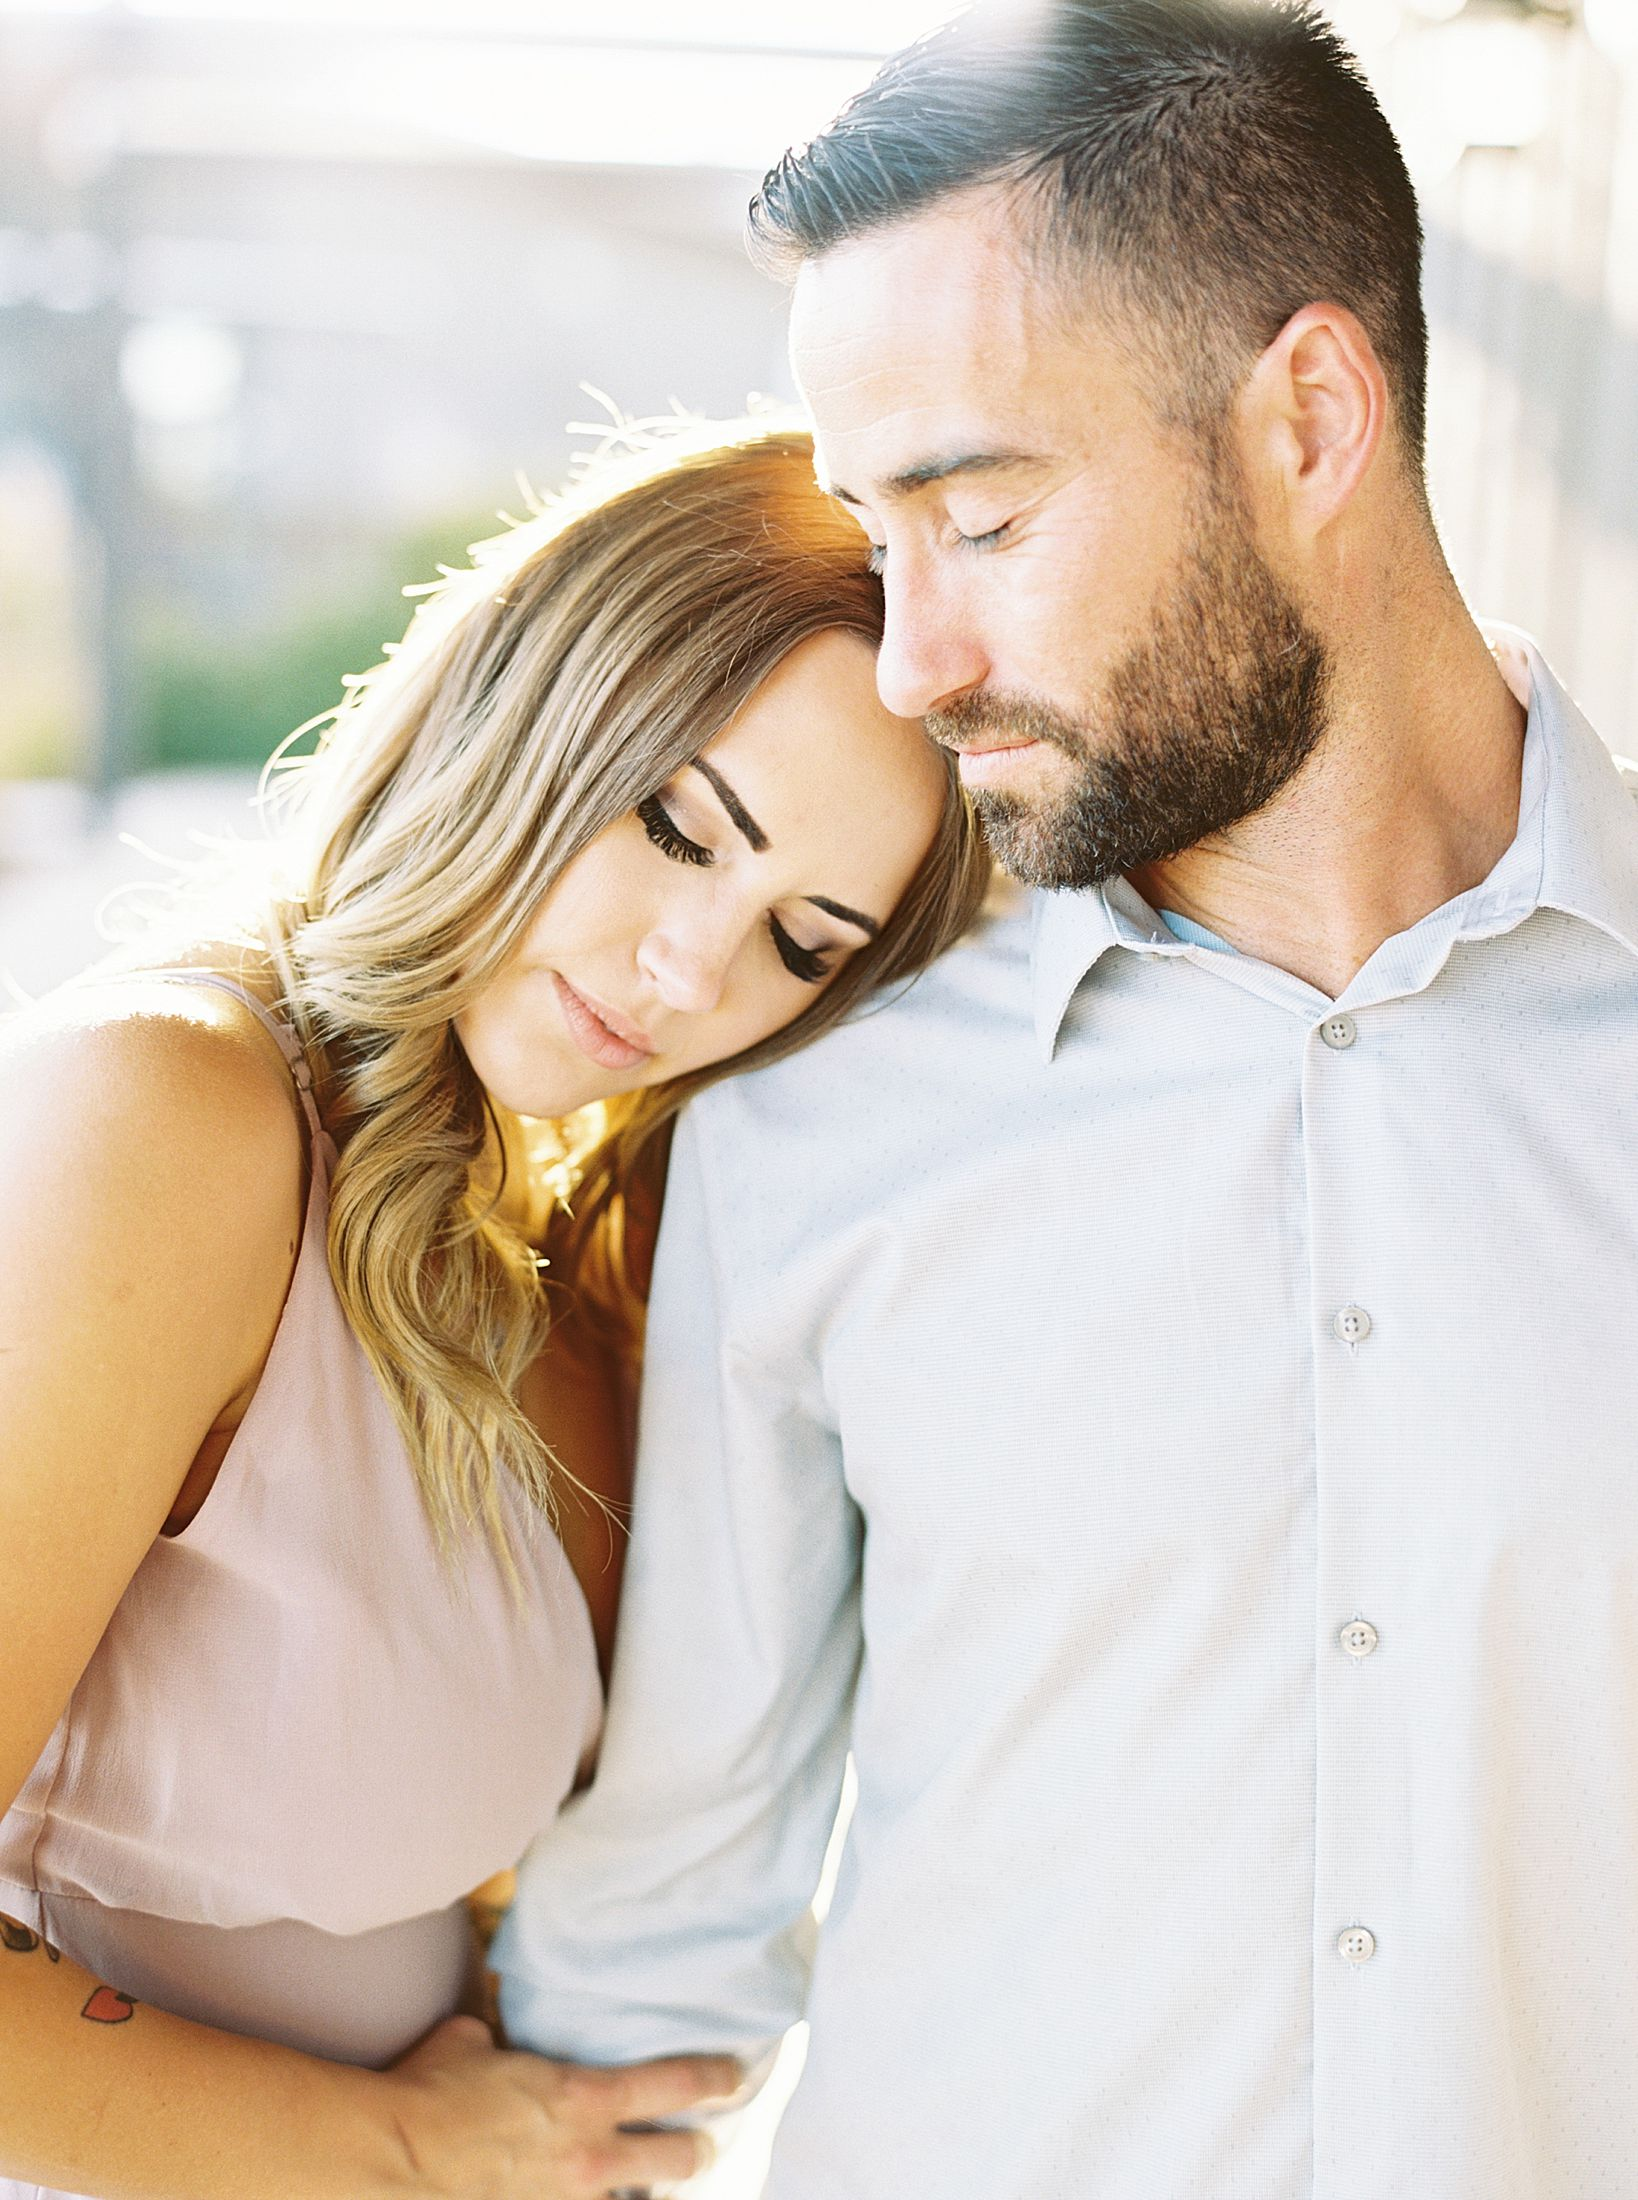 Helwig Winery Engagement Session - Steffanie and Rich - Jenn Robirds Events - Ashley Baumgartner - Sacramento Wedding Photographer - Private Estate Wedding Photographer - Helwig WInery Wedding_0092.jpg